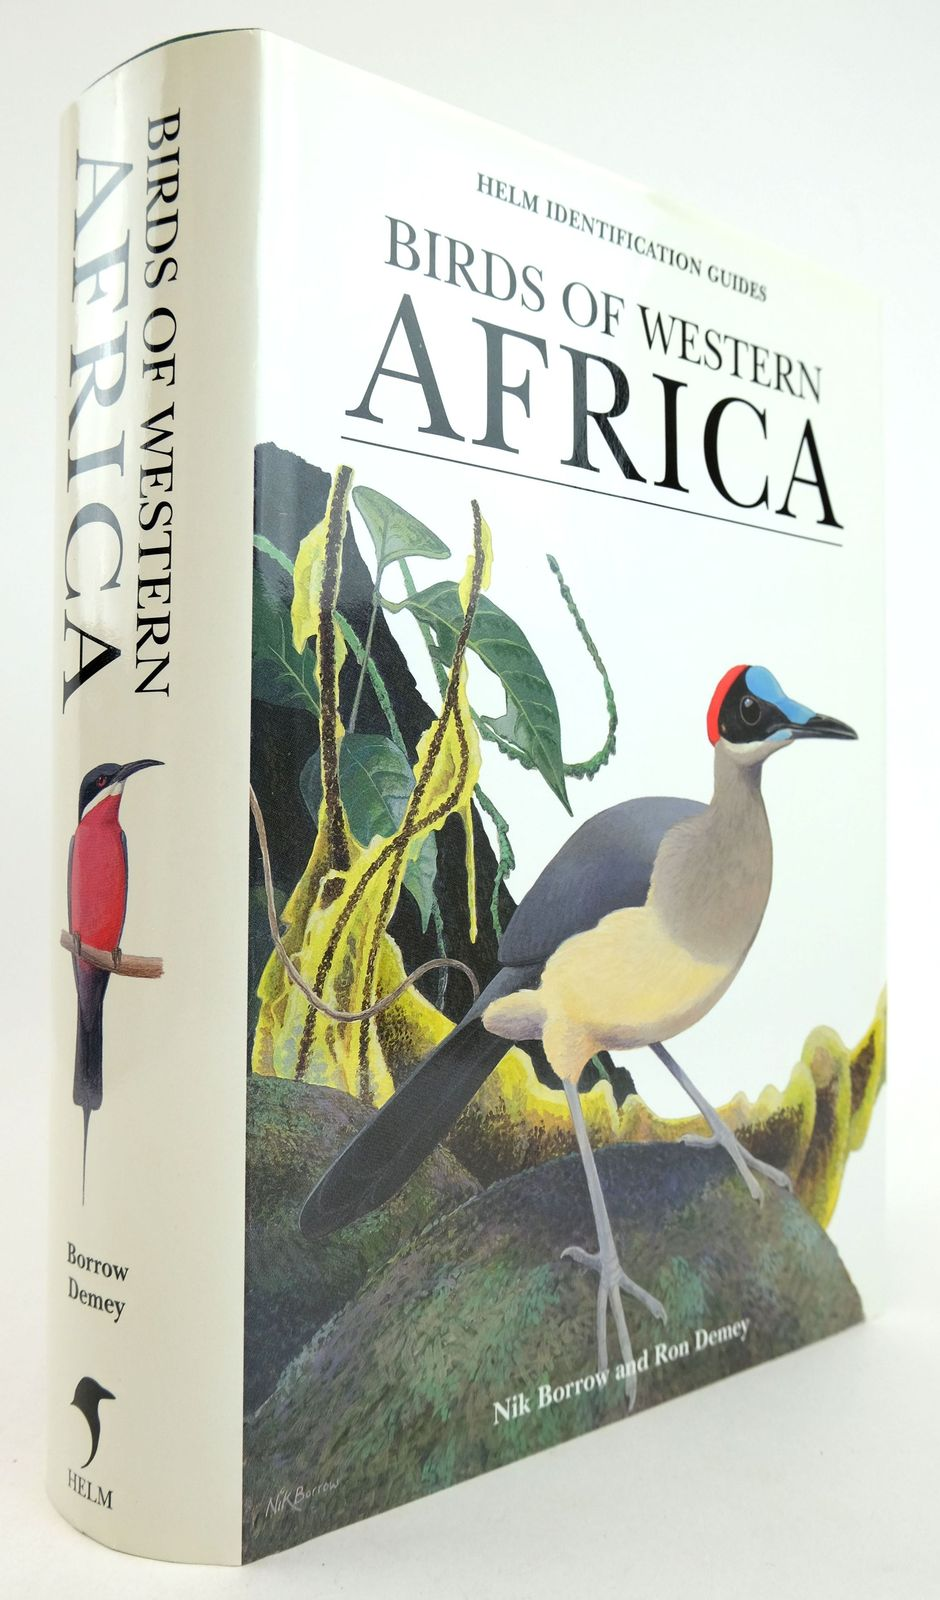 Photo of BIRDS OF WESTERN AFRICA (HELM IDENTIFICATION GUIDES) written by Demey, Ron illustrated by Borrow, Nik published by Christopher Helm (STOCK CODE: 1819322)  for sale by Stella & Rose's Books